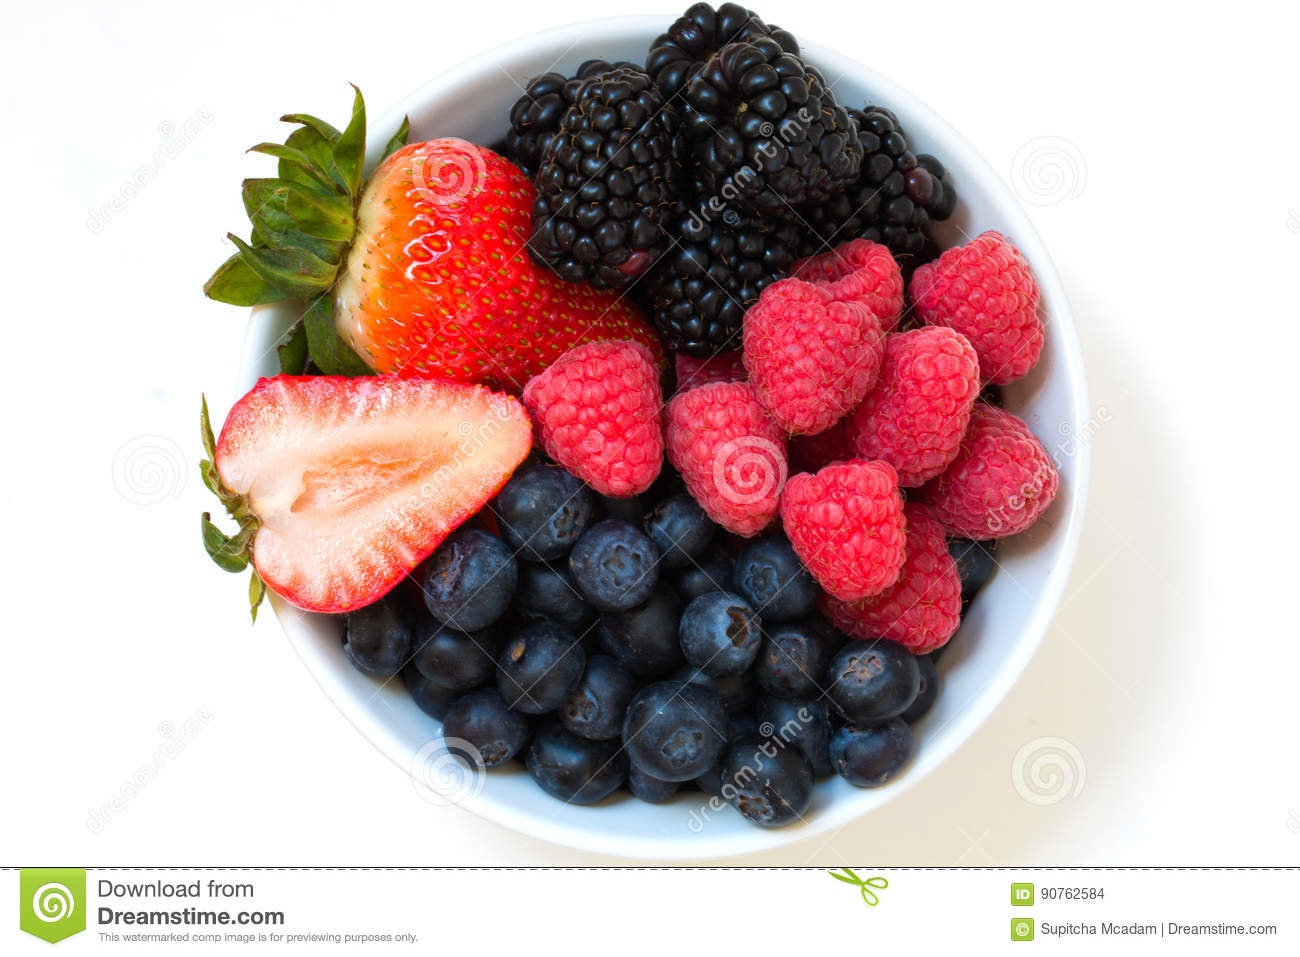 Organic fresh mixed berries fruit in a bowl on the table.